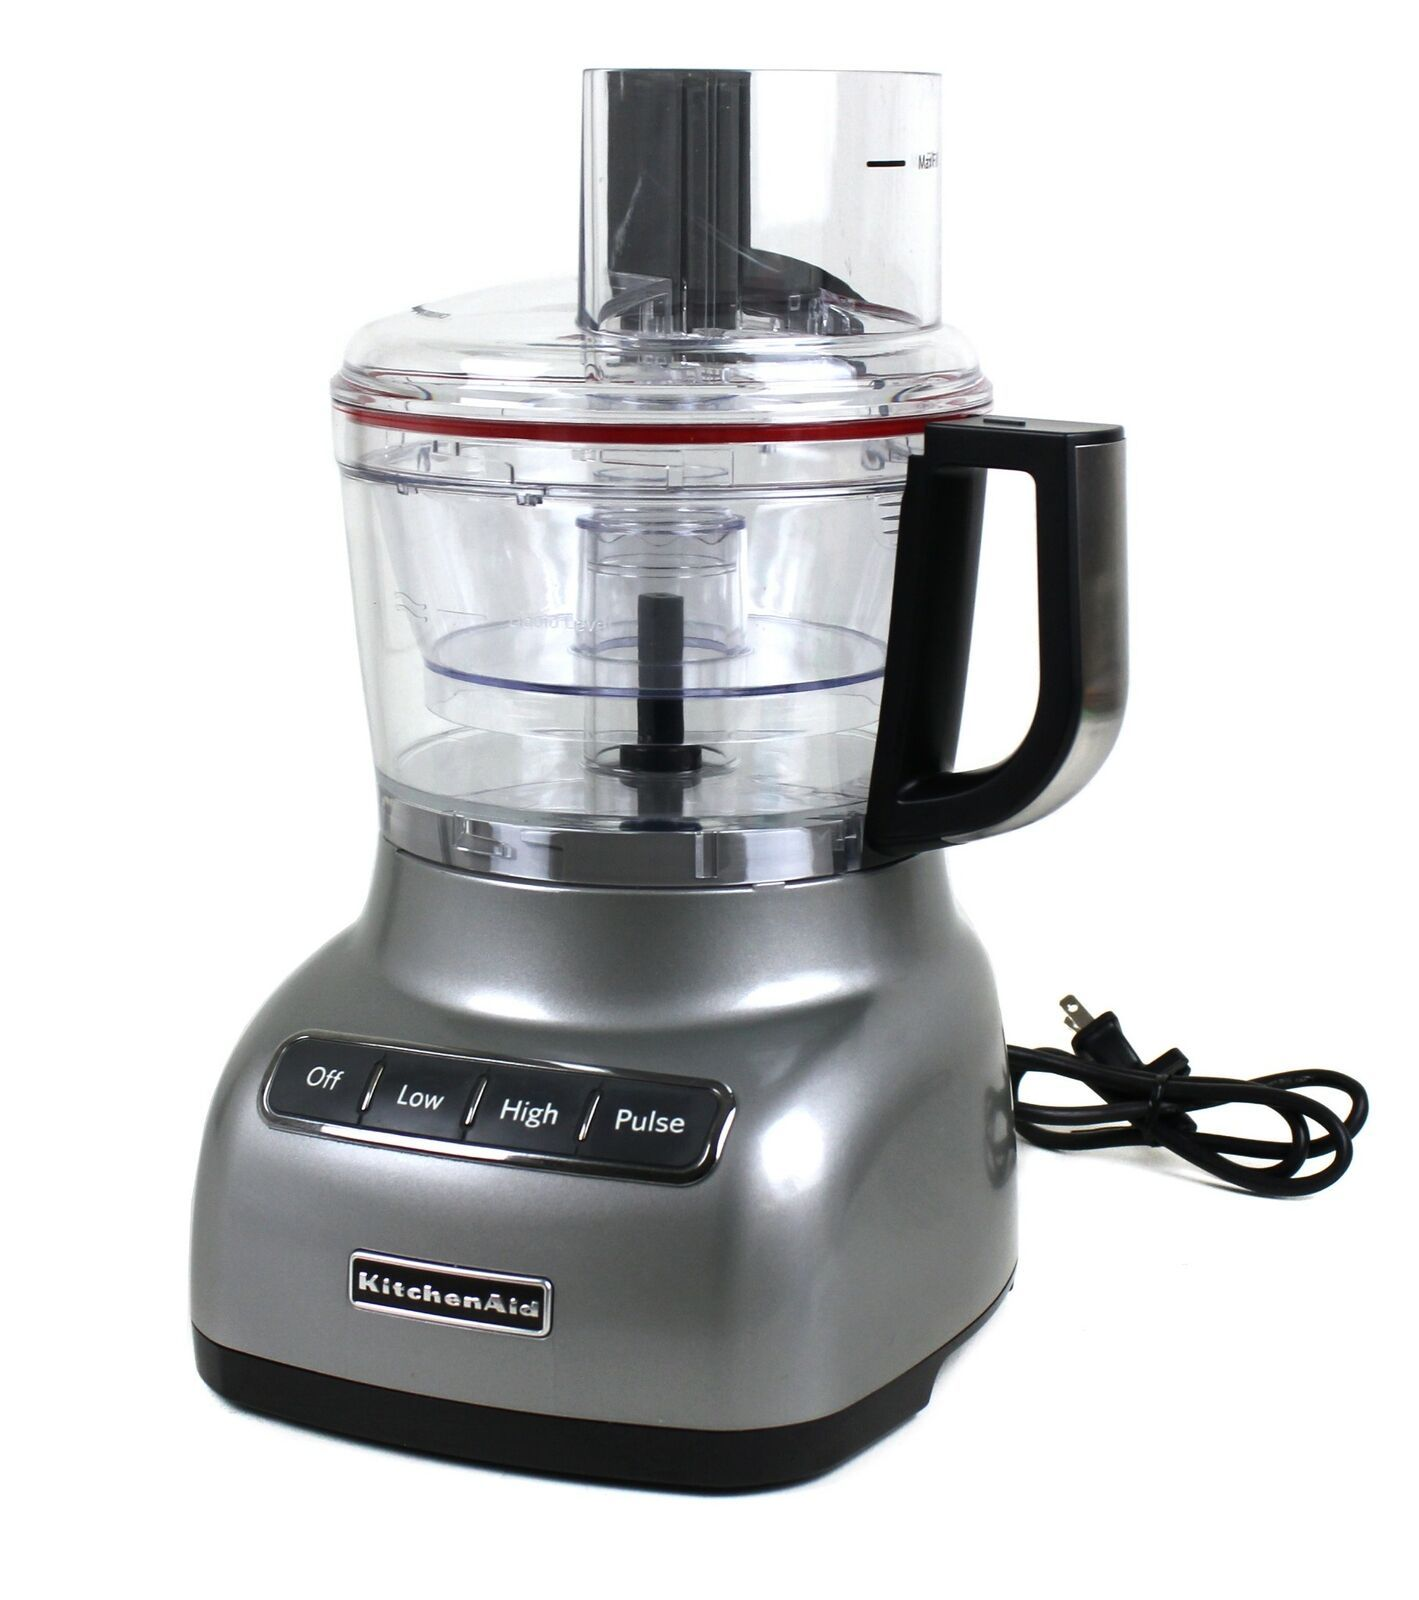 Kitchenaid Kfp0922cu 9 Cup Food Processor With Exact Slice System